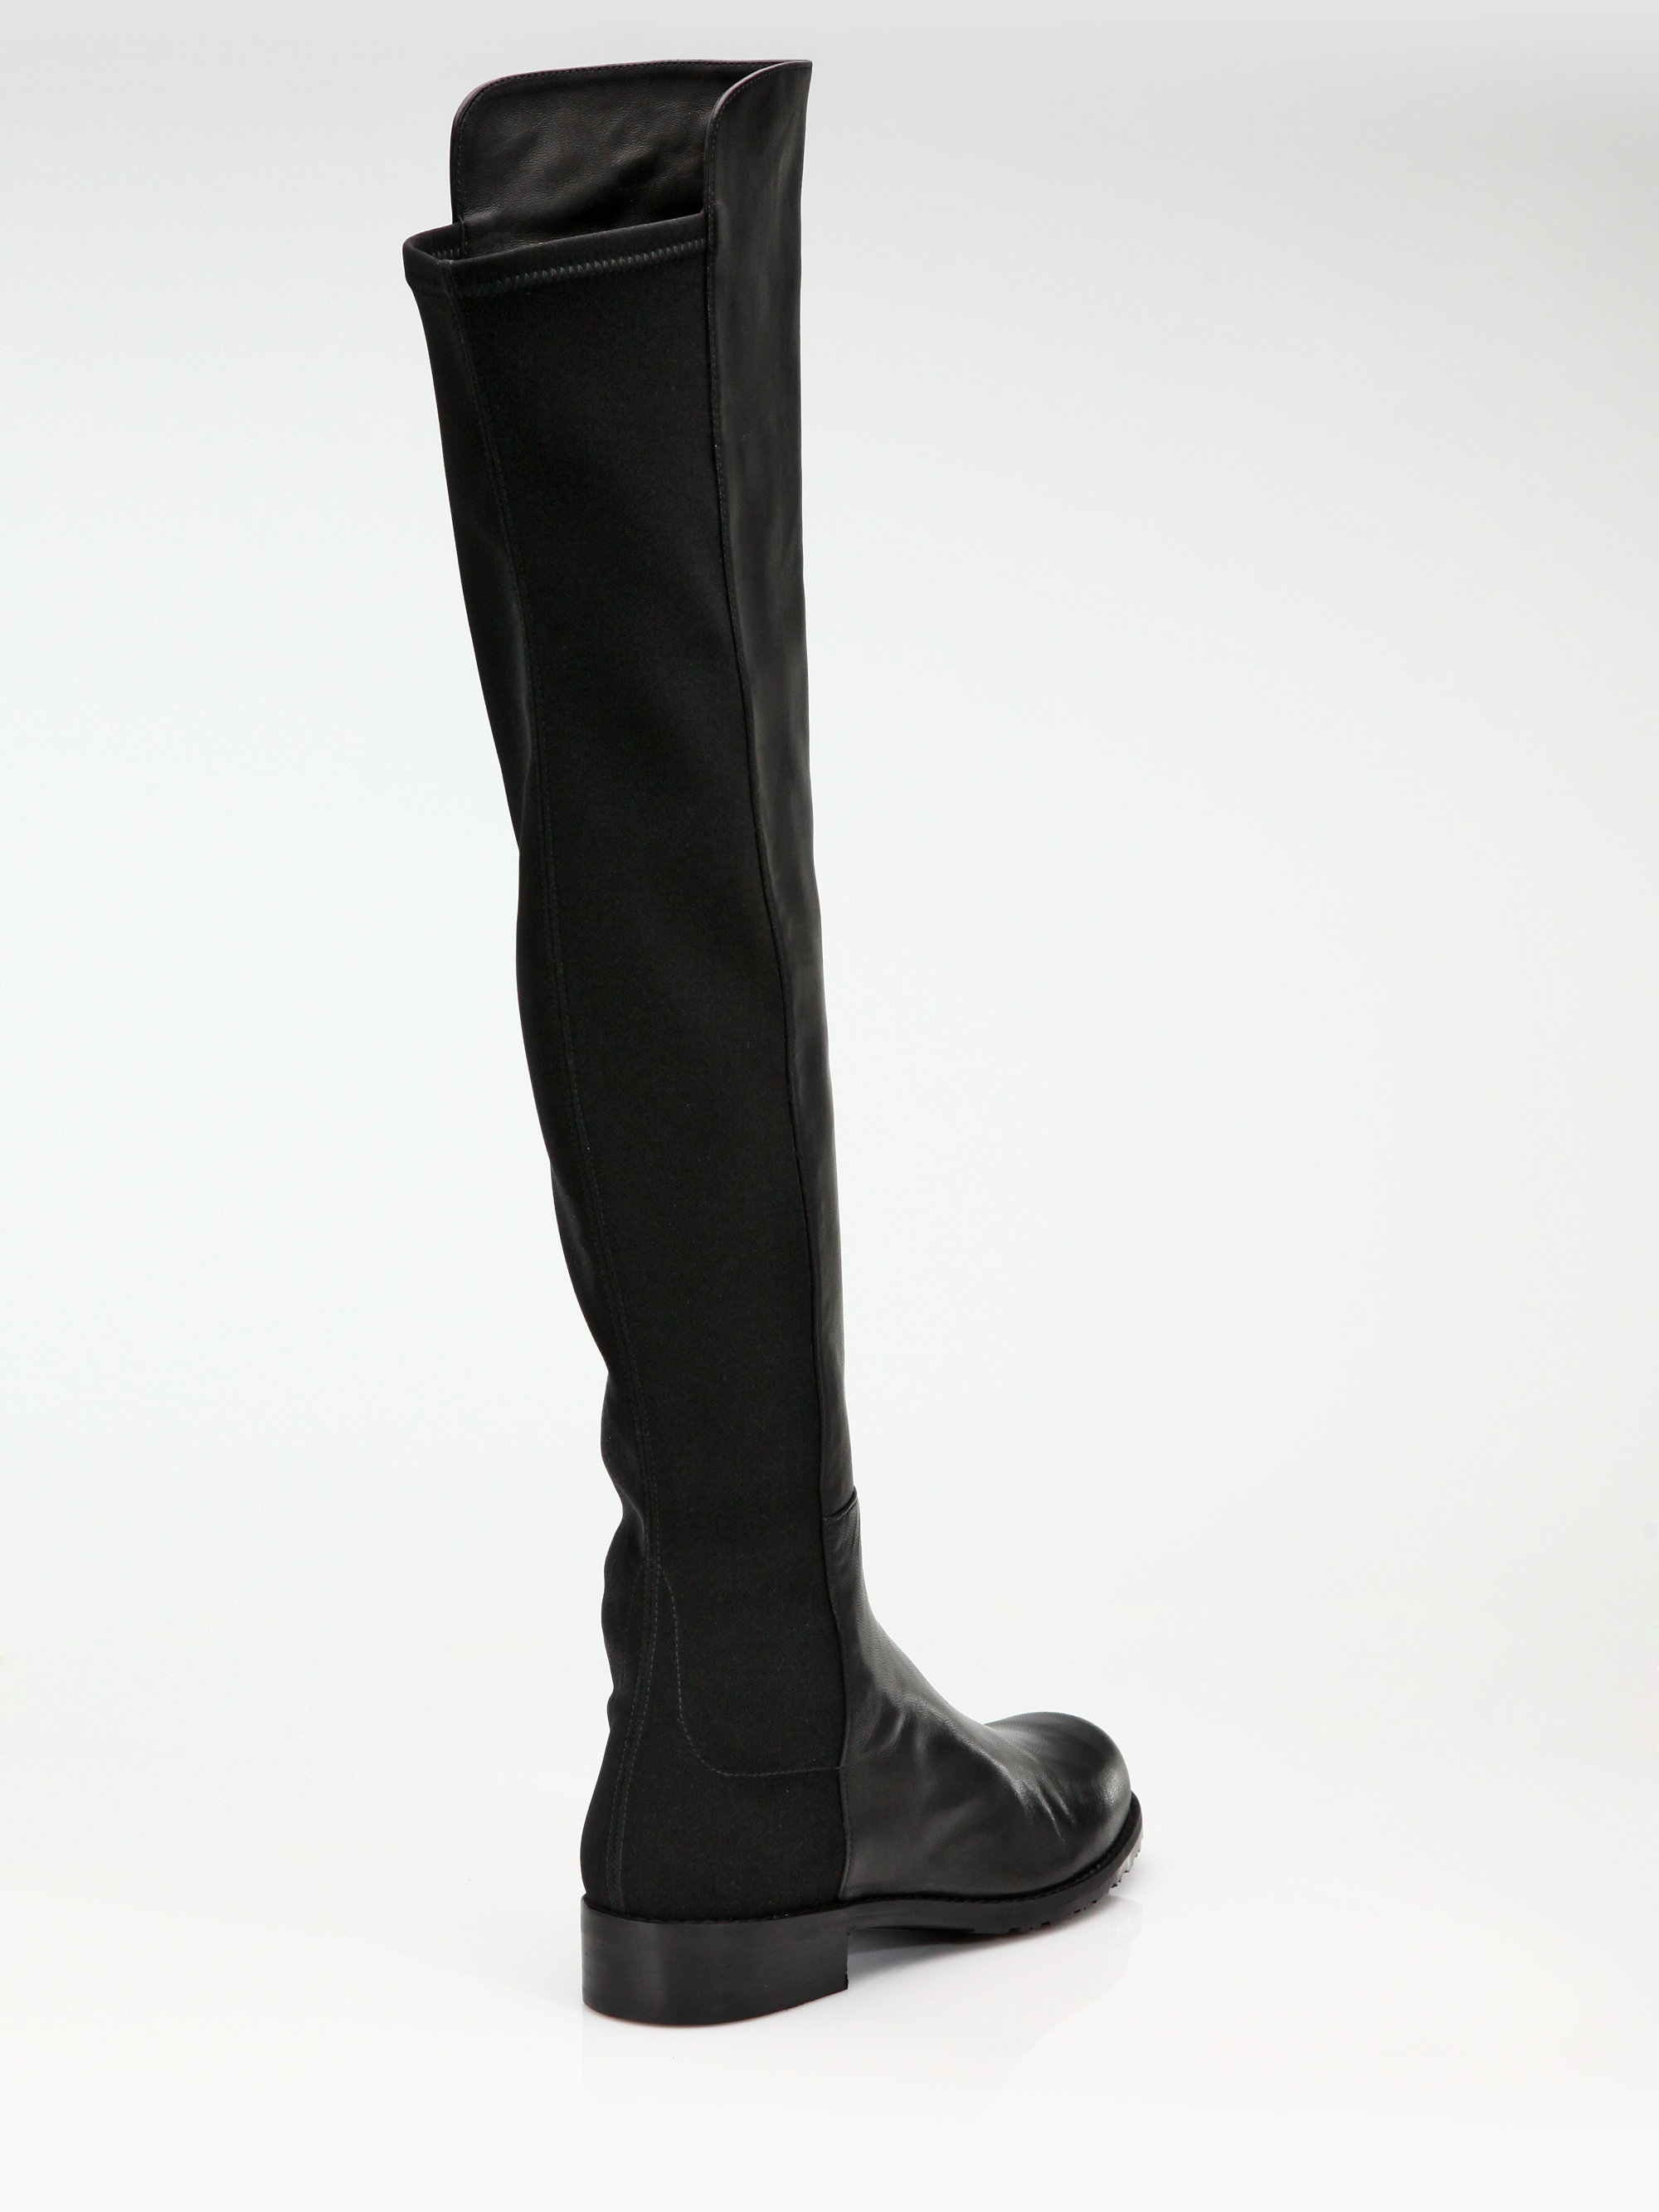 stuart weitzman nappa leather flat overtheknee boots in